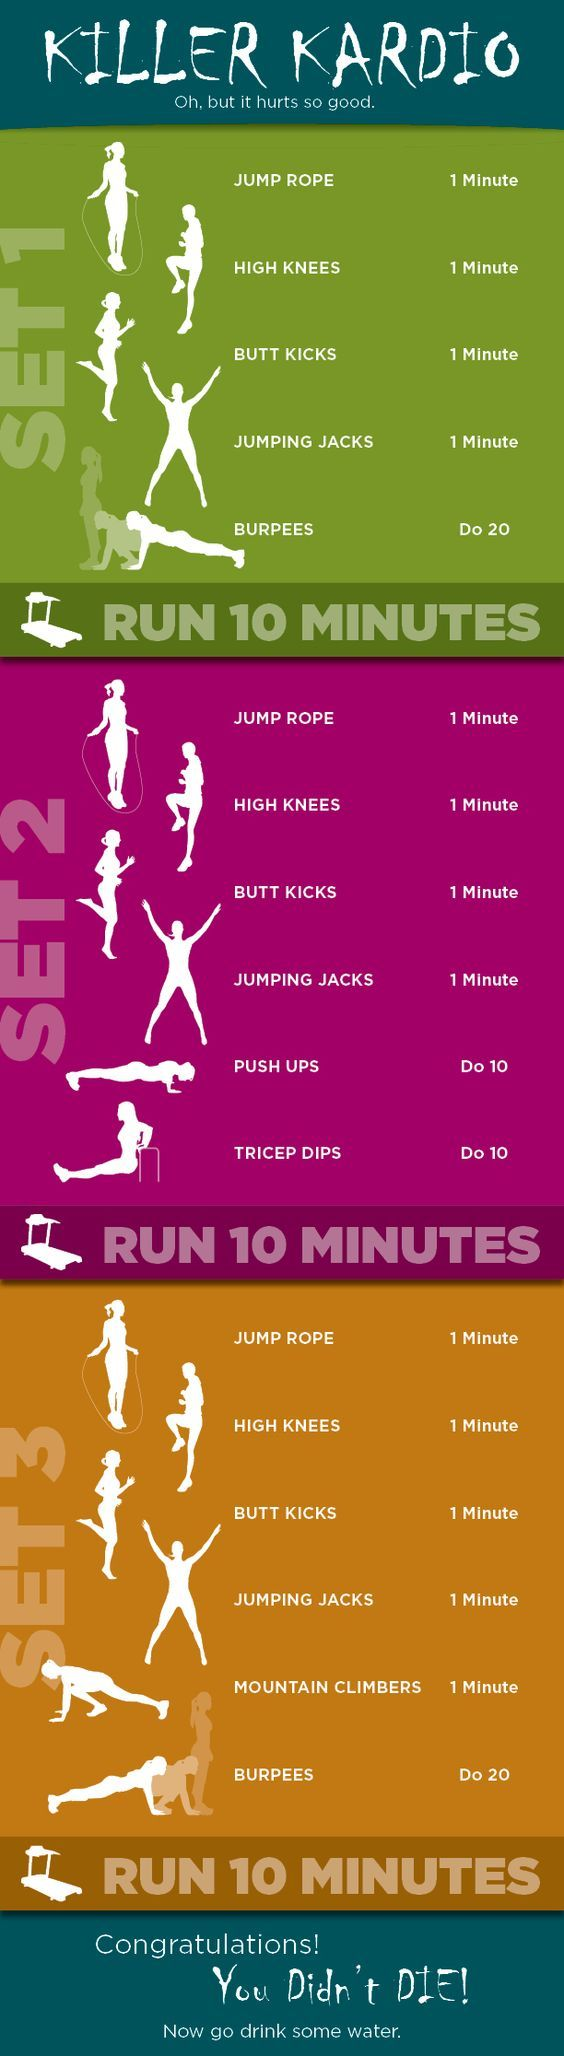 Check out this killer kardio workout with your favorite exercise moves. Jumping Jacks Jump ropes High knees Burpees and many more.